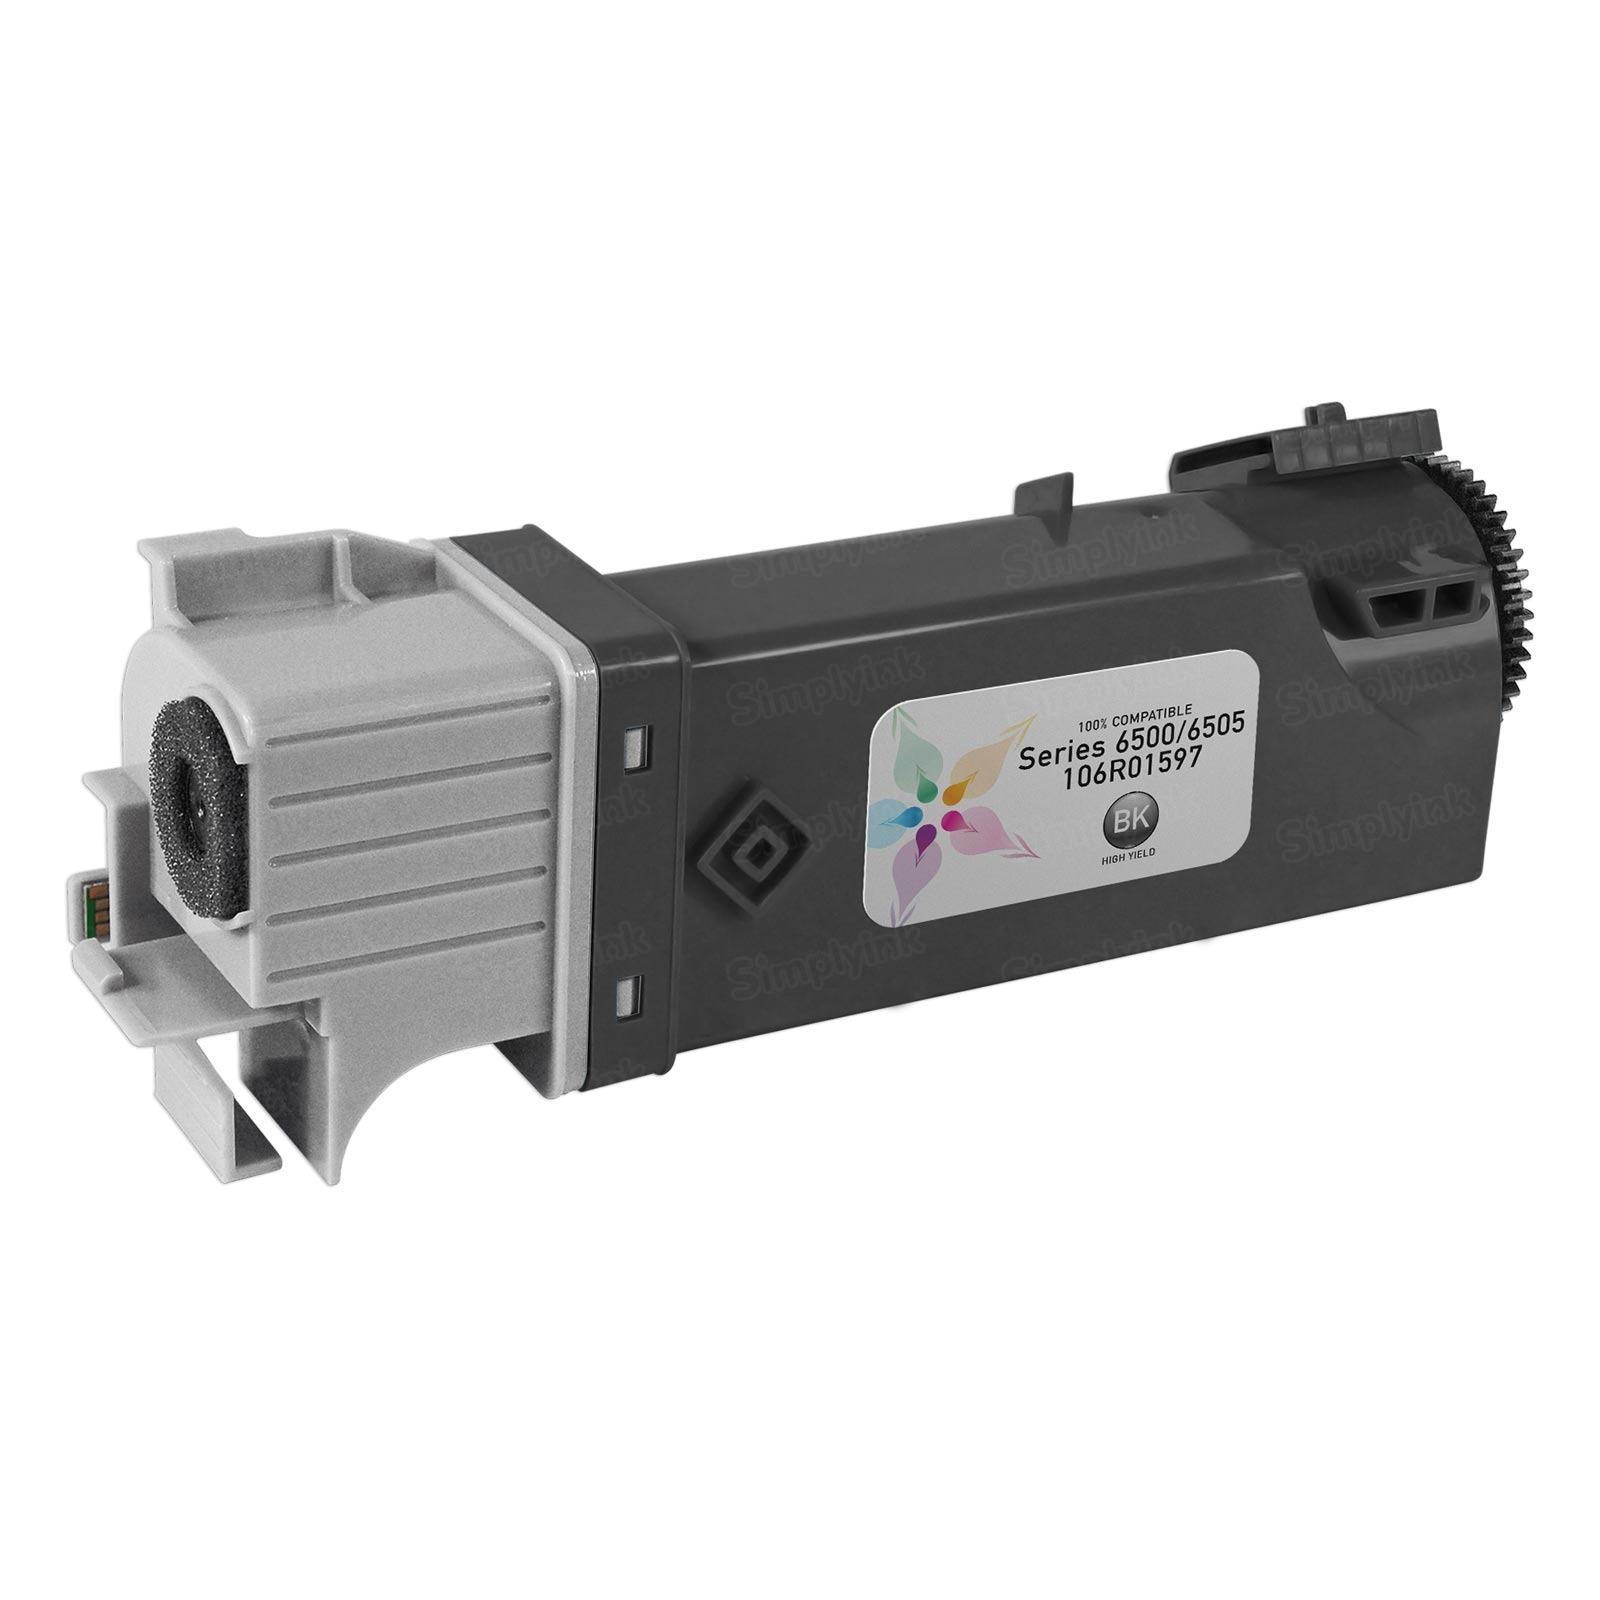 Compatible Xerox Phaser 6500/WorkCentre 6505 HY Black Toner